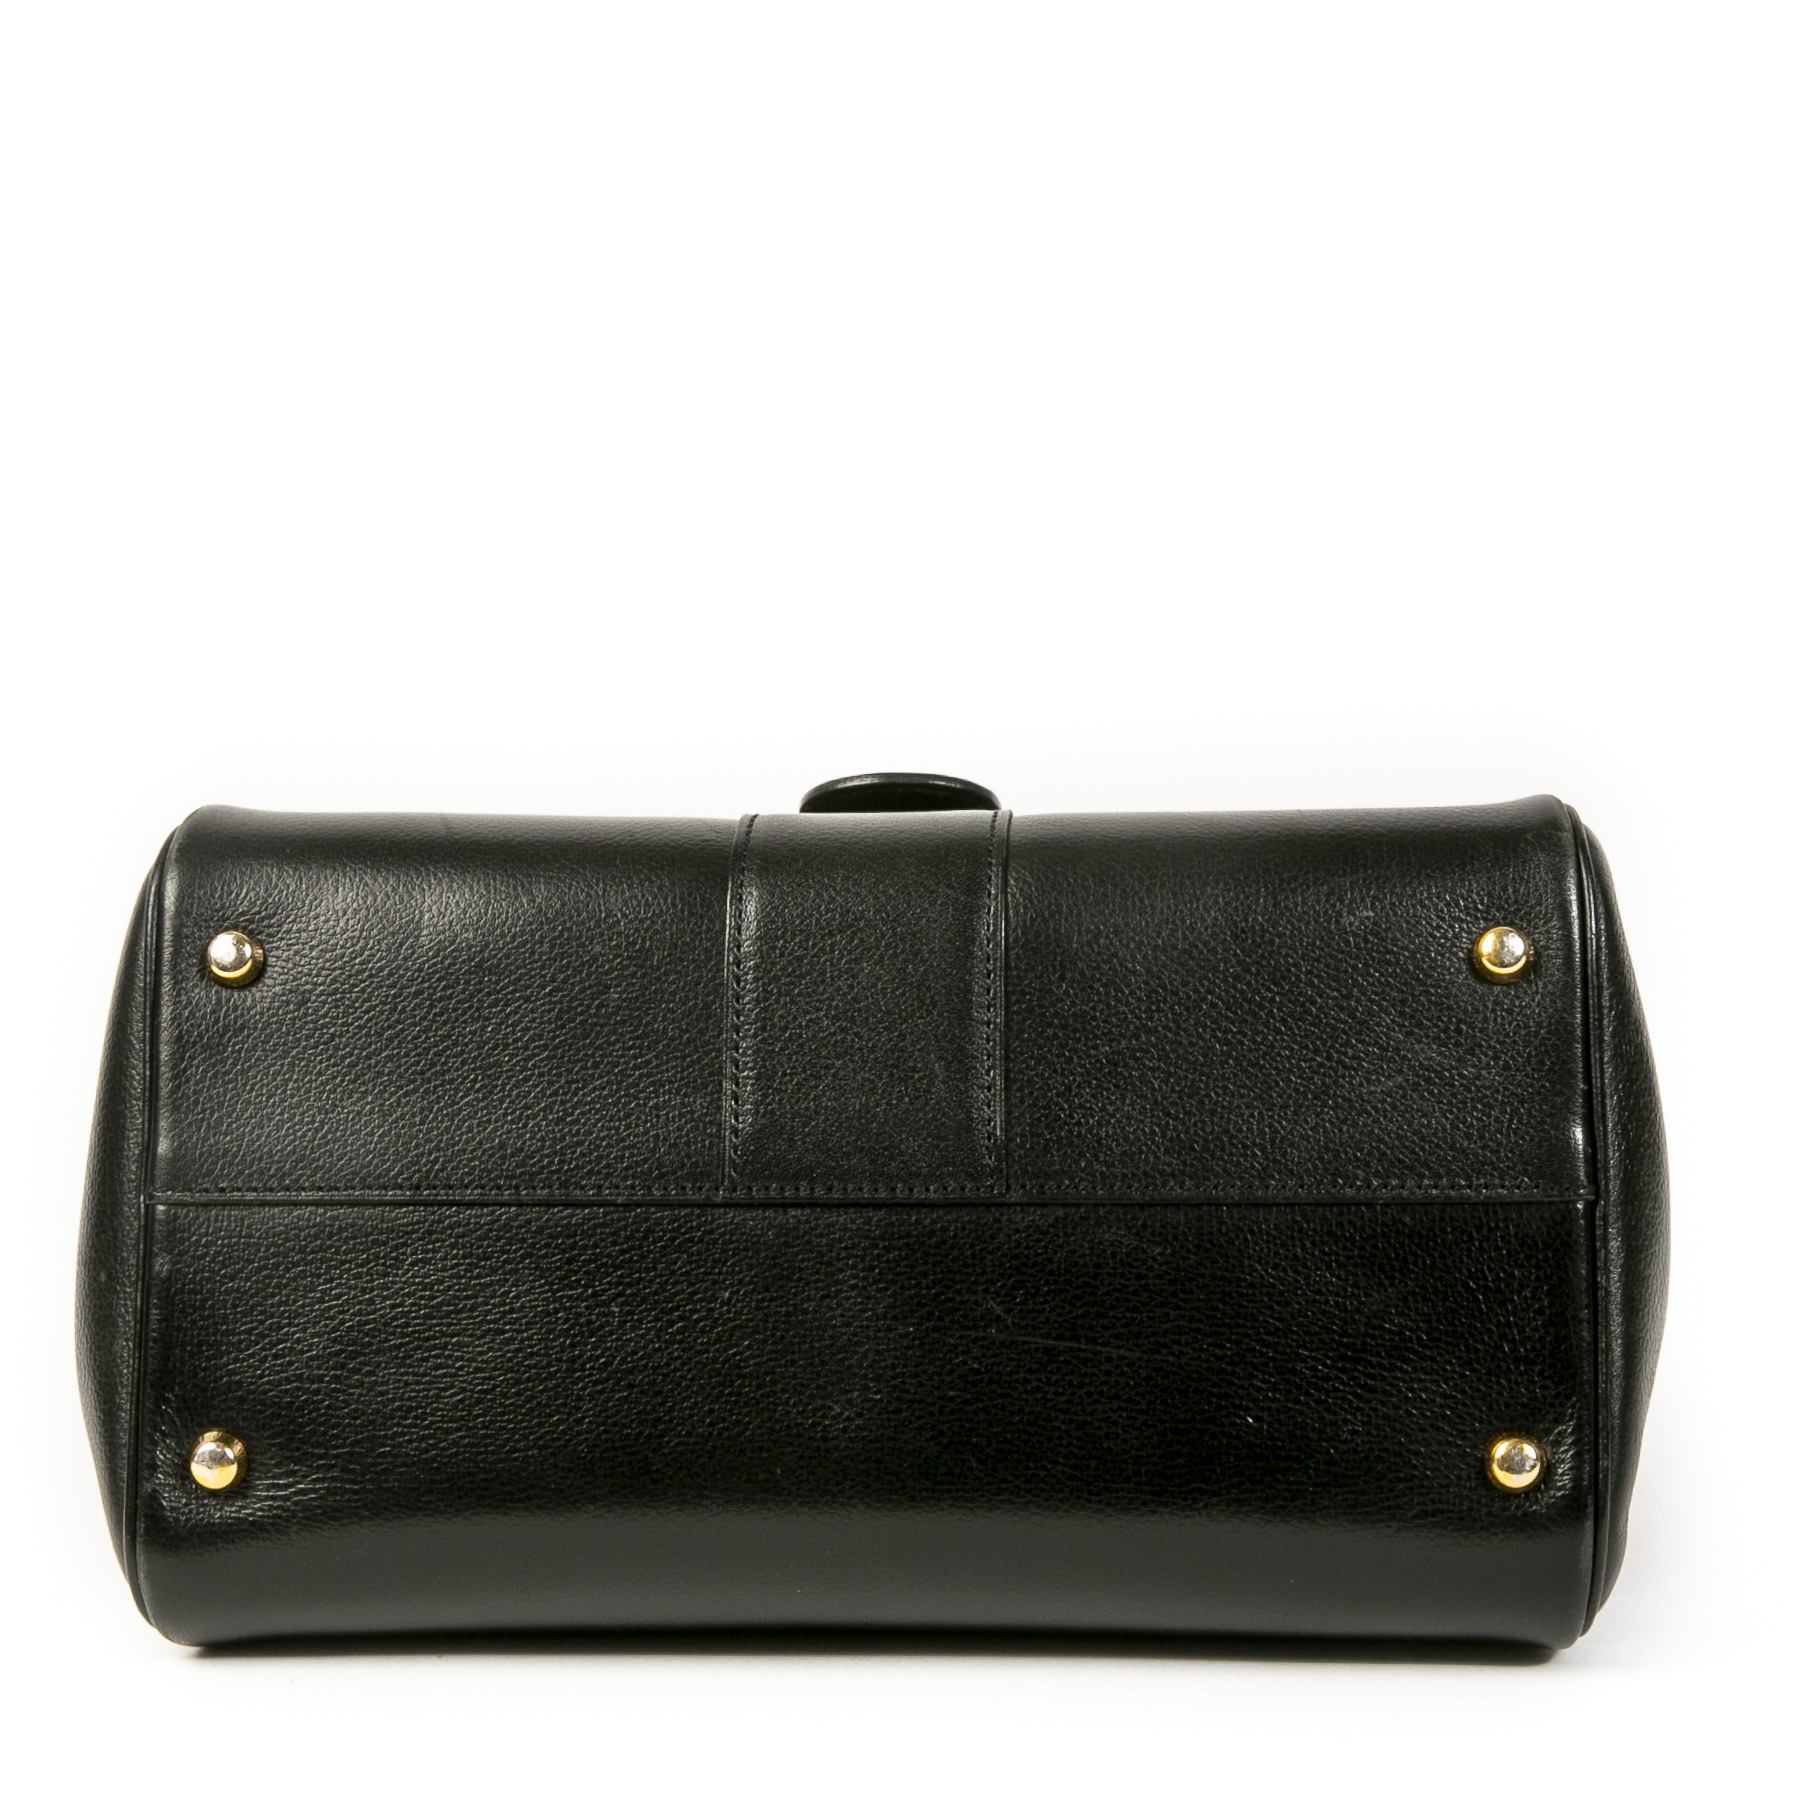 Authentic second-hand vintage Delvaux Black Brillant PM Bag at online webshop LabelLOV